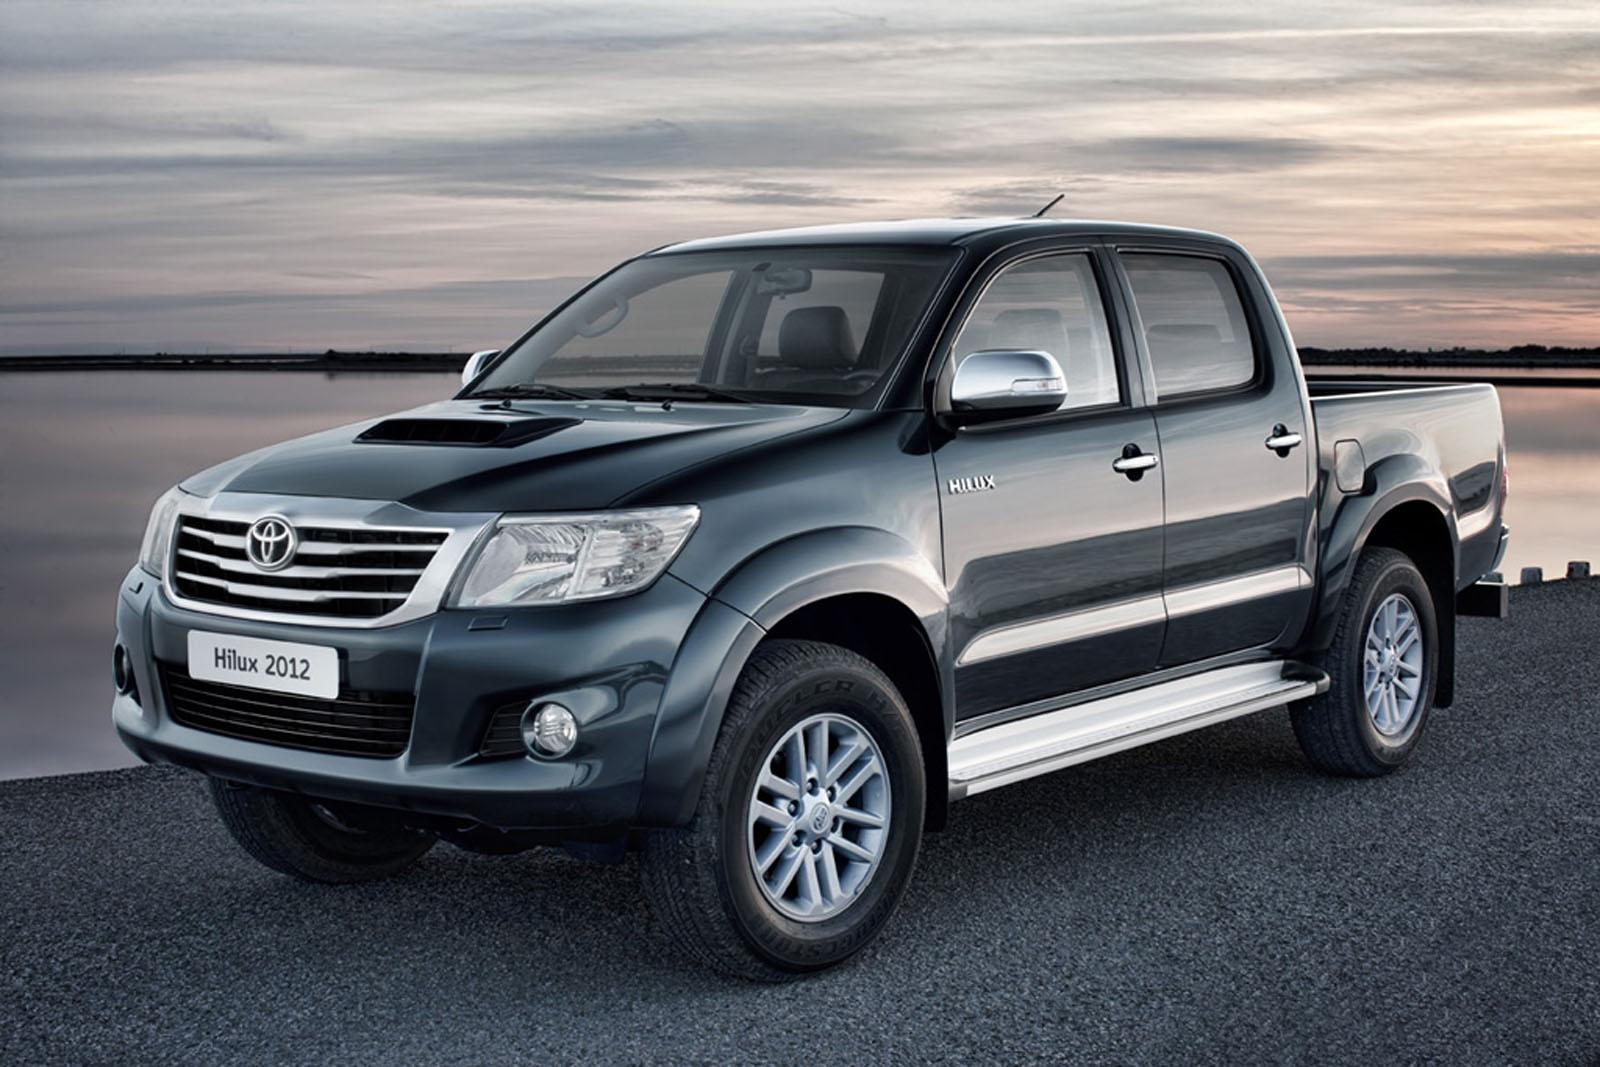 2012 Toyota Hilux Picture #1 of 4